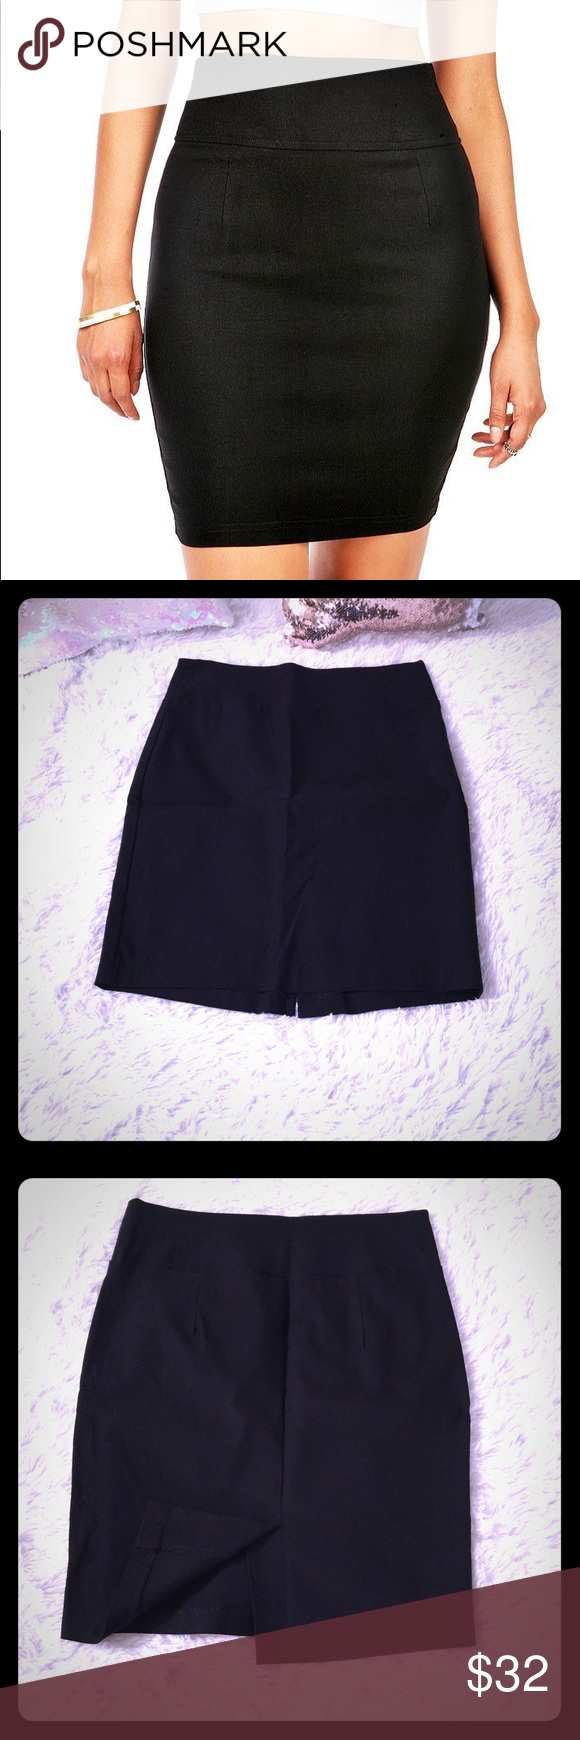 62caee22429 IZ Beyer High Waist Bandage Skirt! New without Tags! Thick band high waisted!  Has small slit in back! Hugs your body with poly Spandex material! Jet  black!